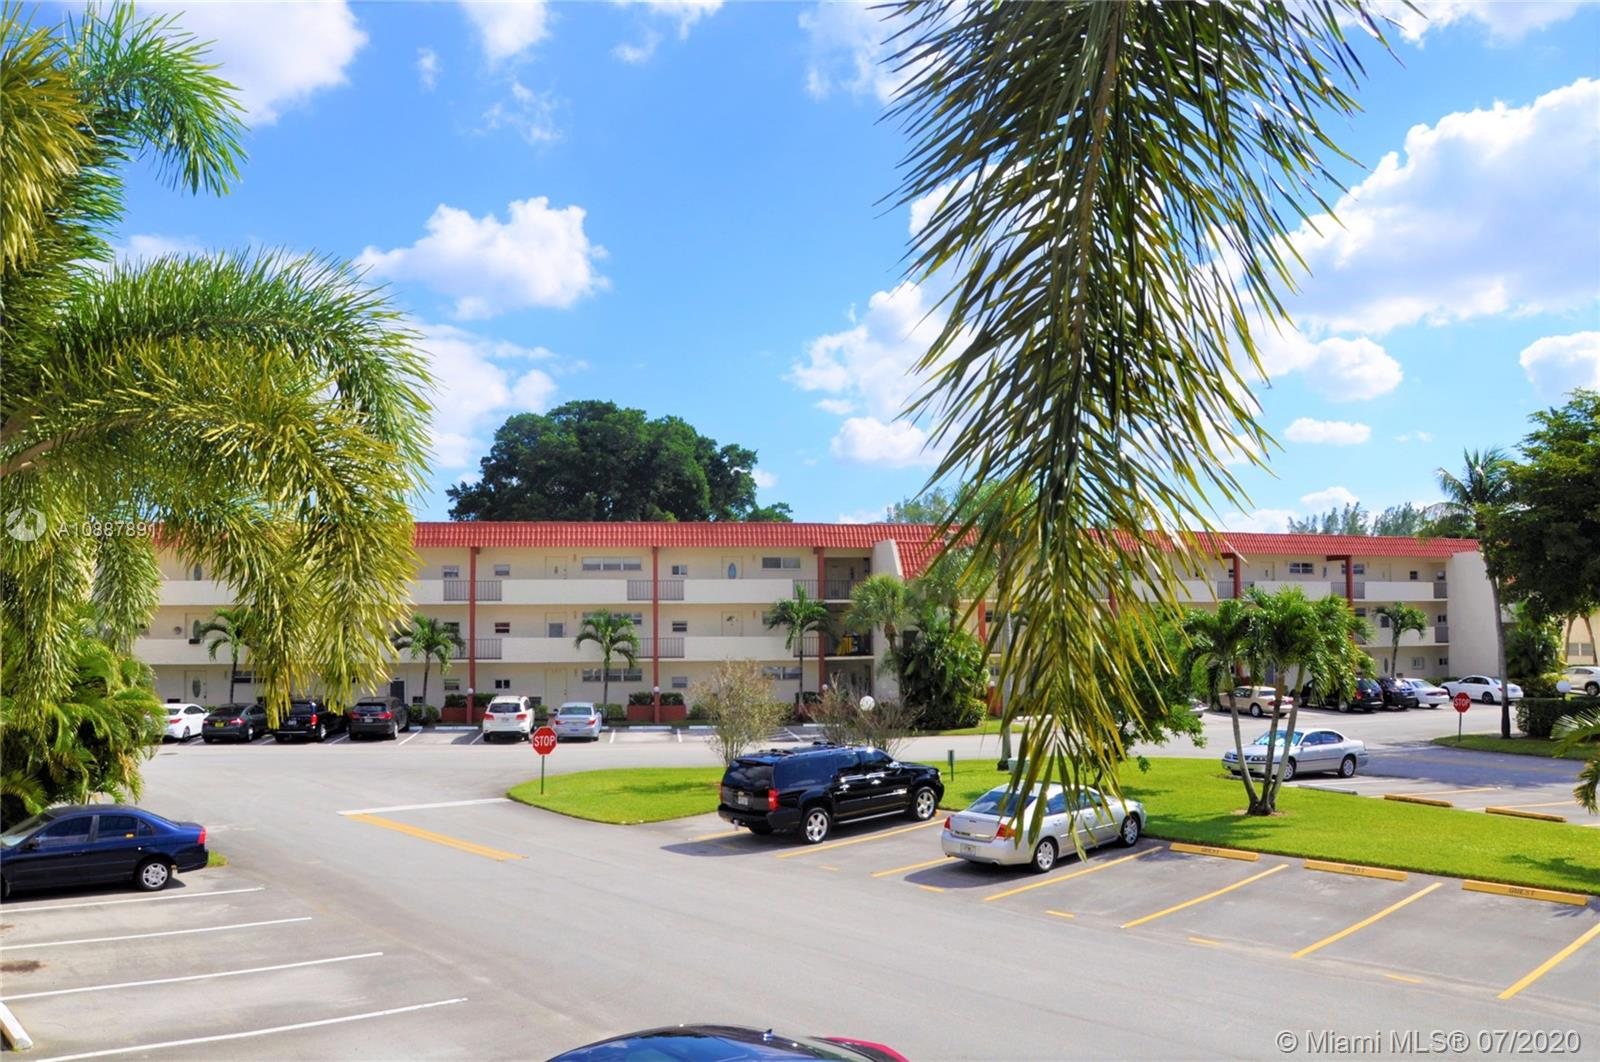 9411 N Hollybrook Lake Dr Unit 205, Pembroke Pines, Florida 33025